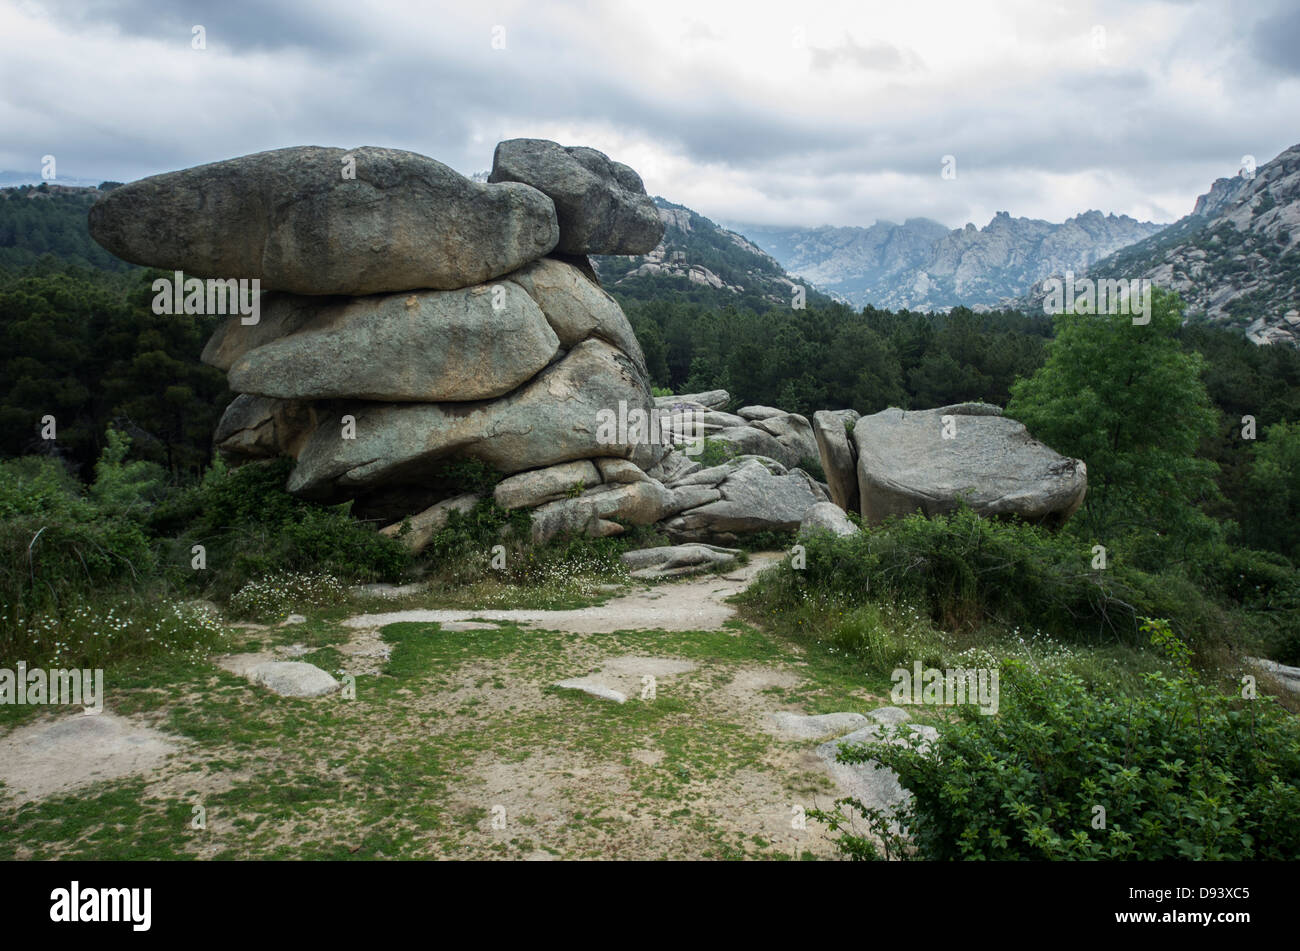 Landscape of Regional Park of Manzanares in Madrid. Rocks and pradesh are the main geological characteristics Stock Photo